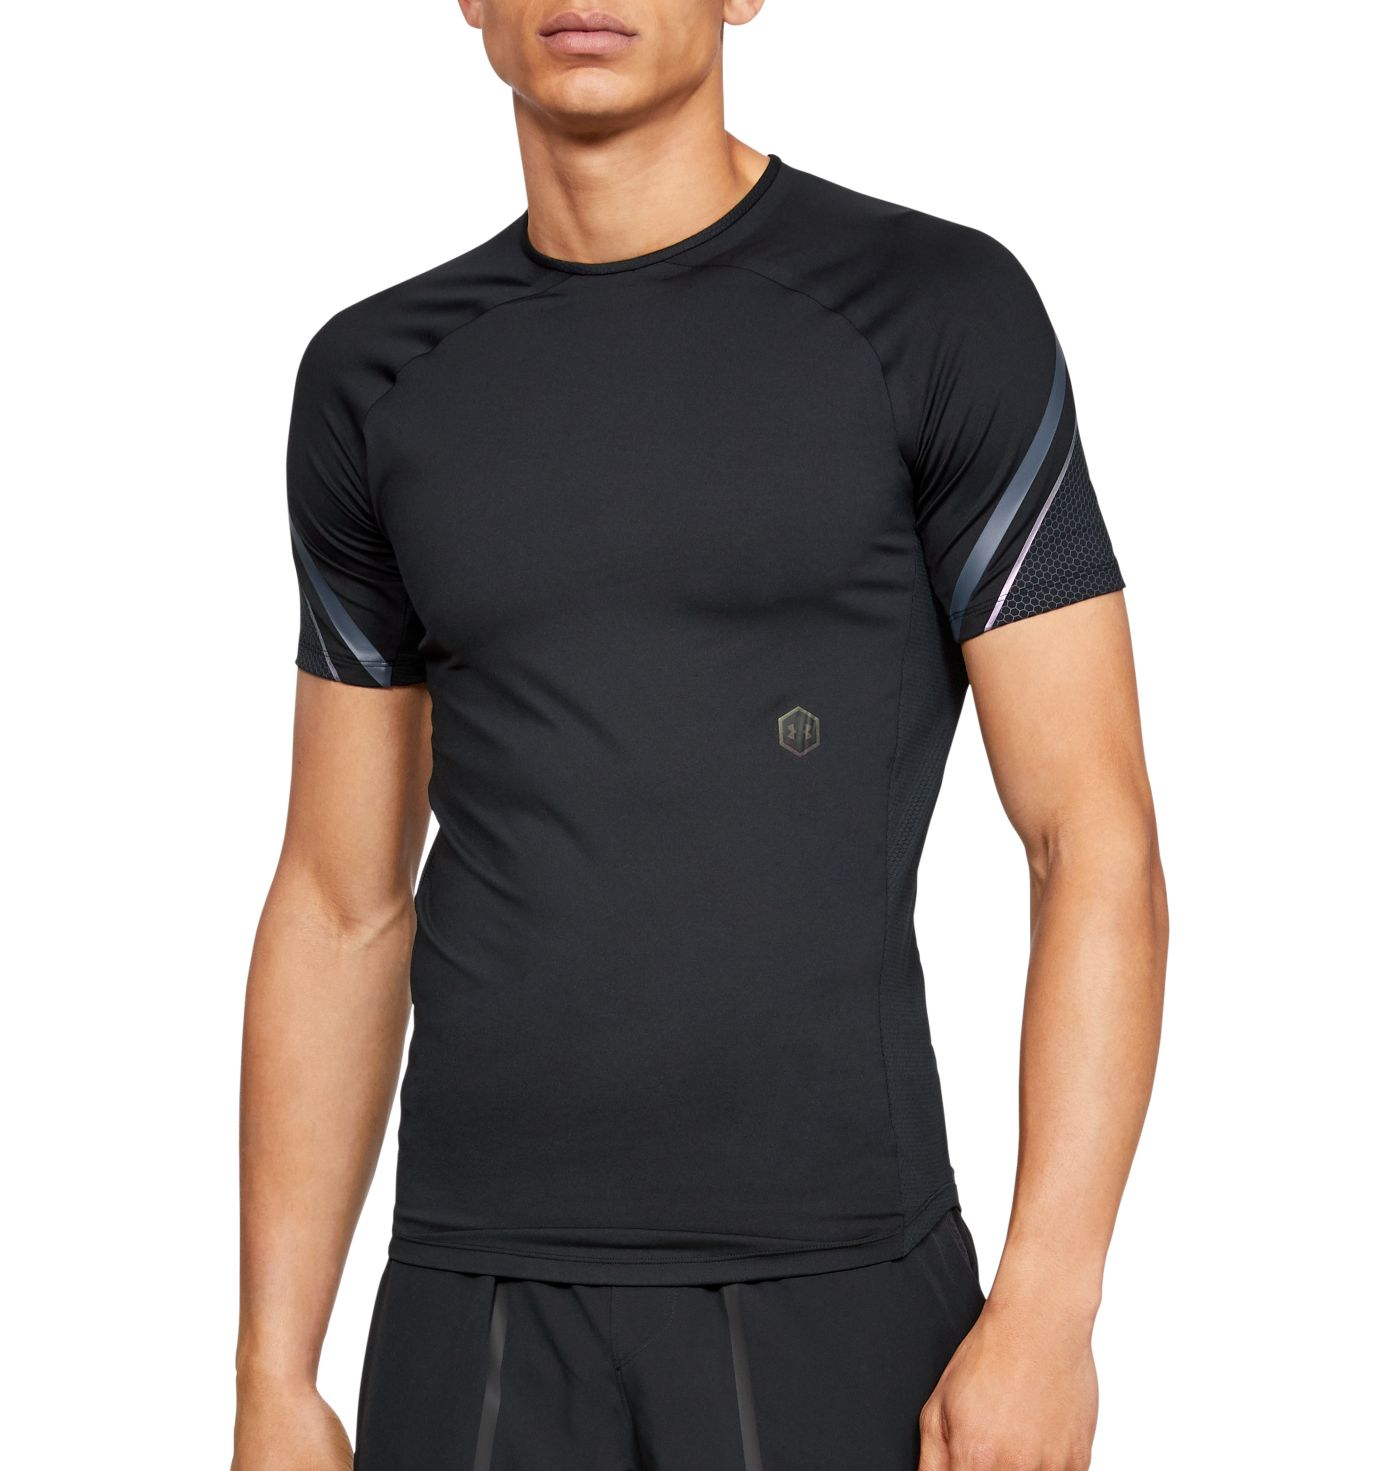 Under Armour Men's RUSH Compression Graphic Short Sleeve Shirt